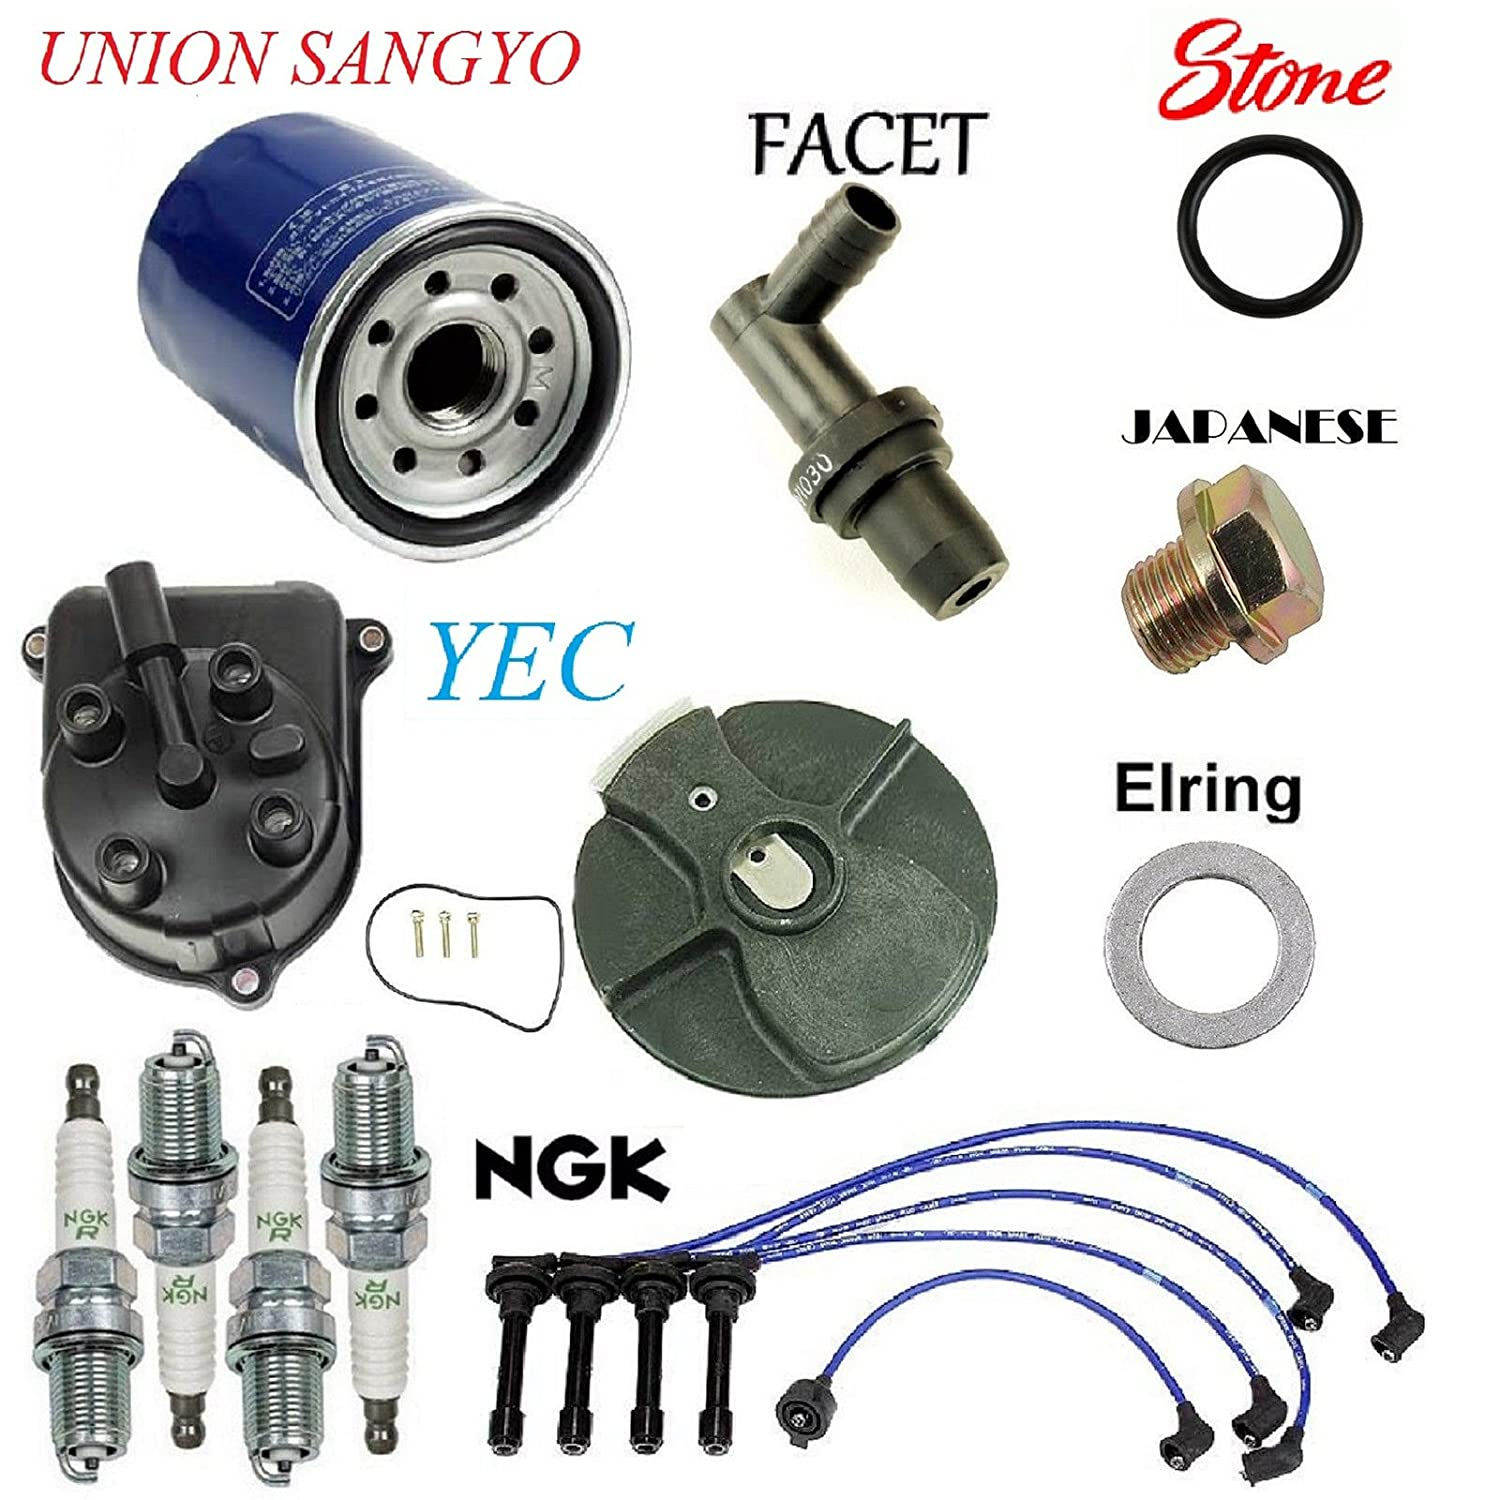 Tune Up Kit Cap and Rotor Filters Plugs Wire for Honda Accord DX; LX; 2.2L 1994-1997 8USAUTO